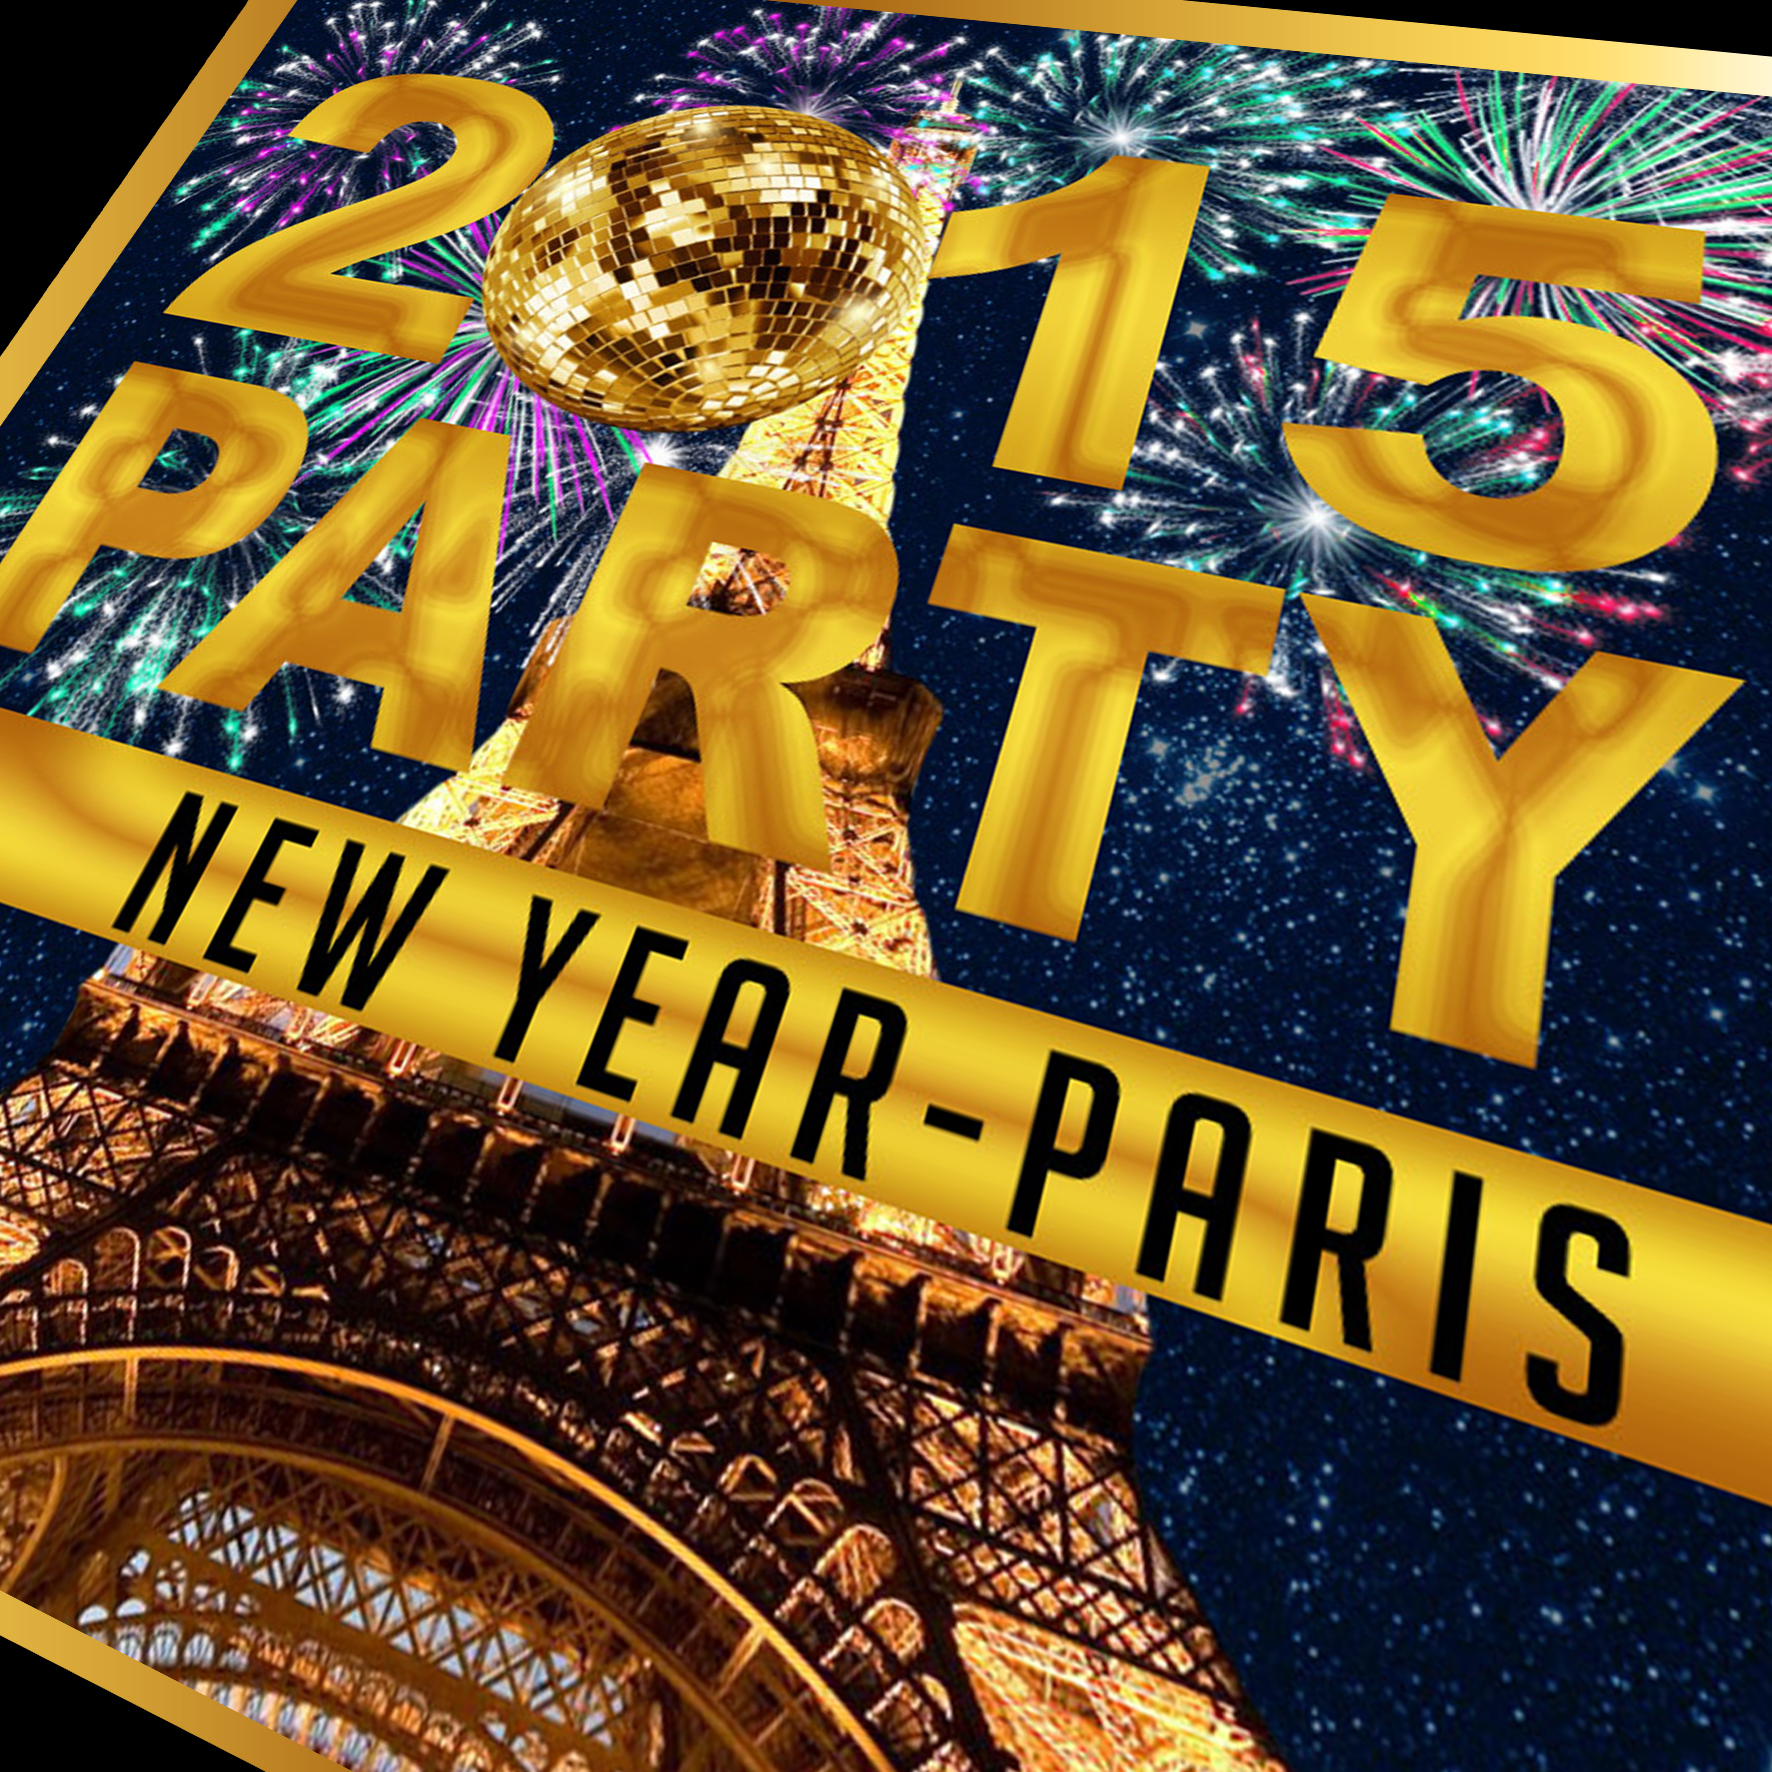 best new years eve parties paris new year's eve The Best New Year's Eve Parties in Paris 6 2630